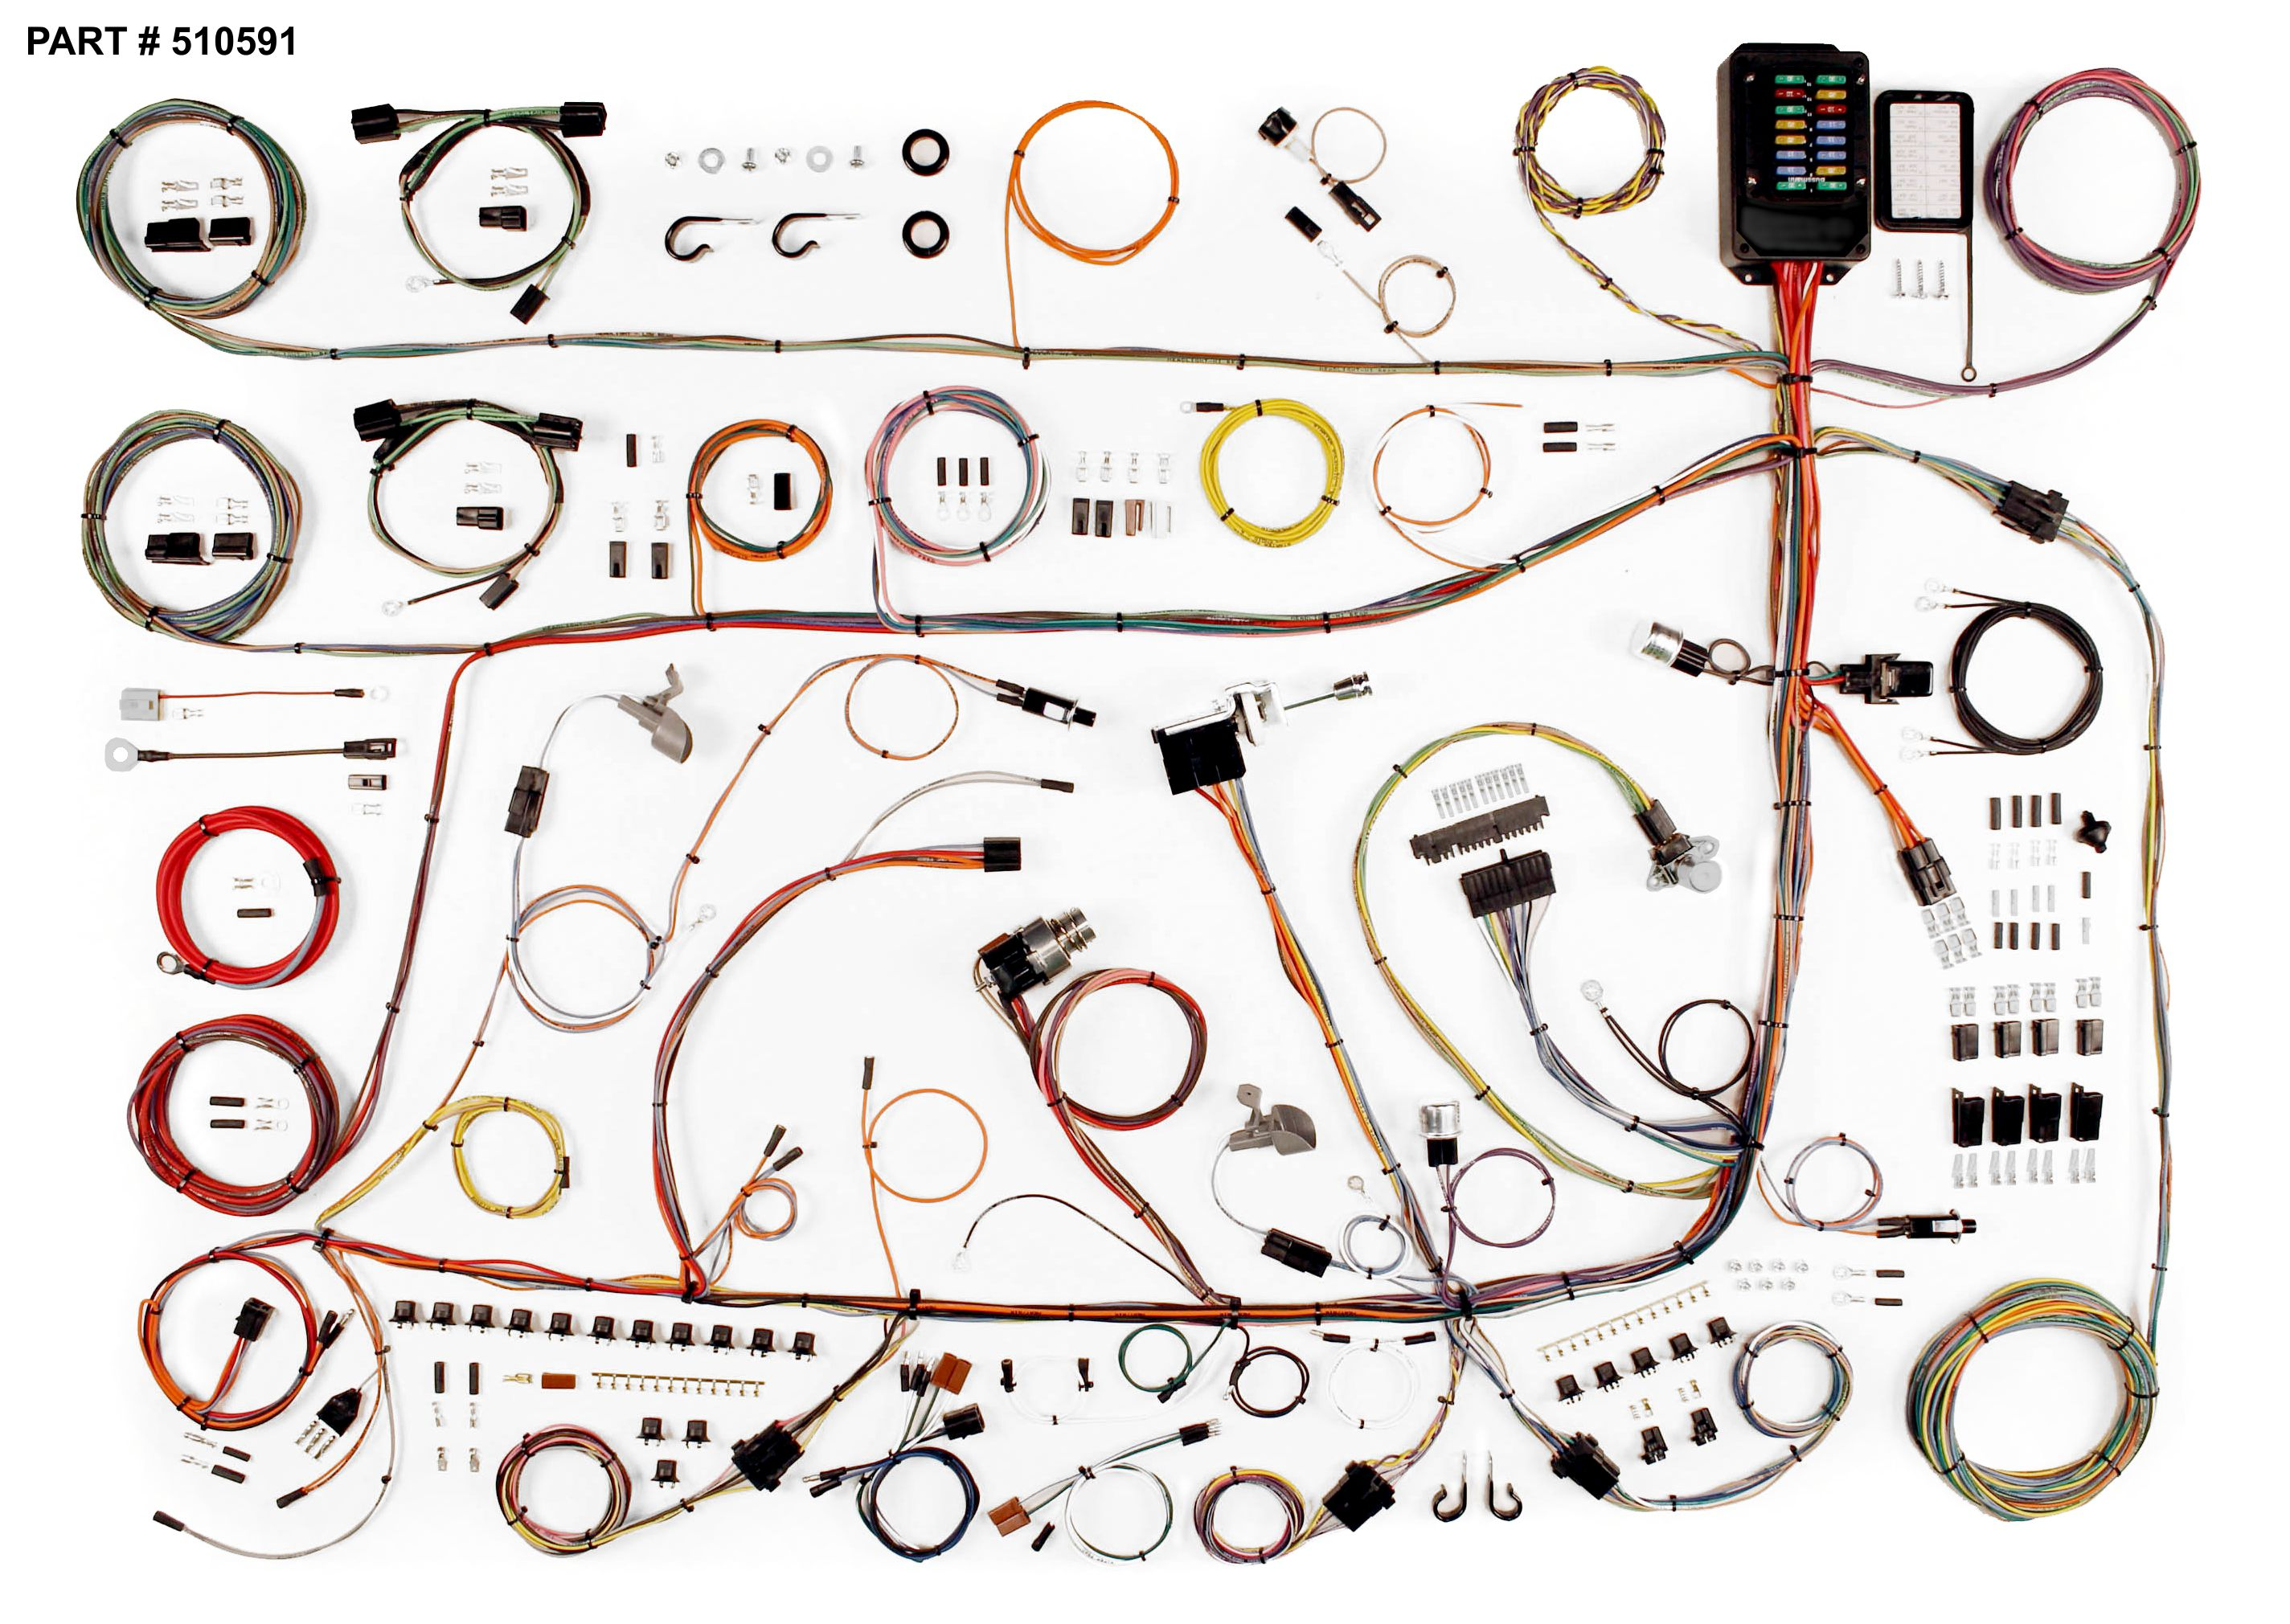 1964 ford galaxie wiring harness 1964 ford galaxie radio wiring diagram